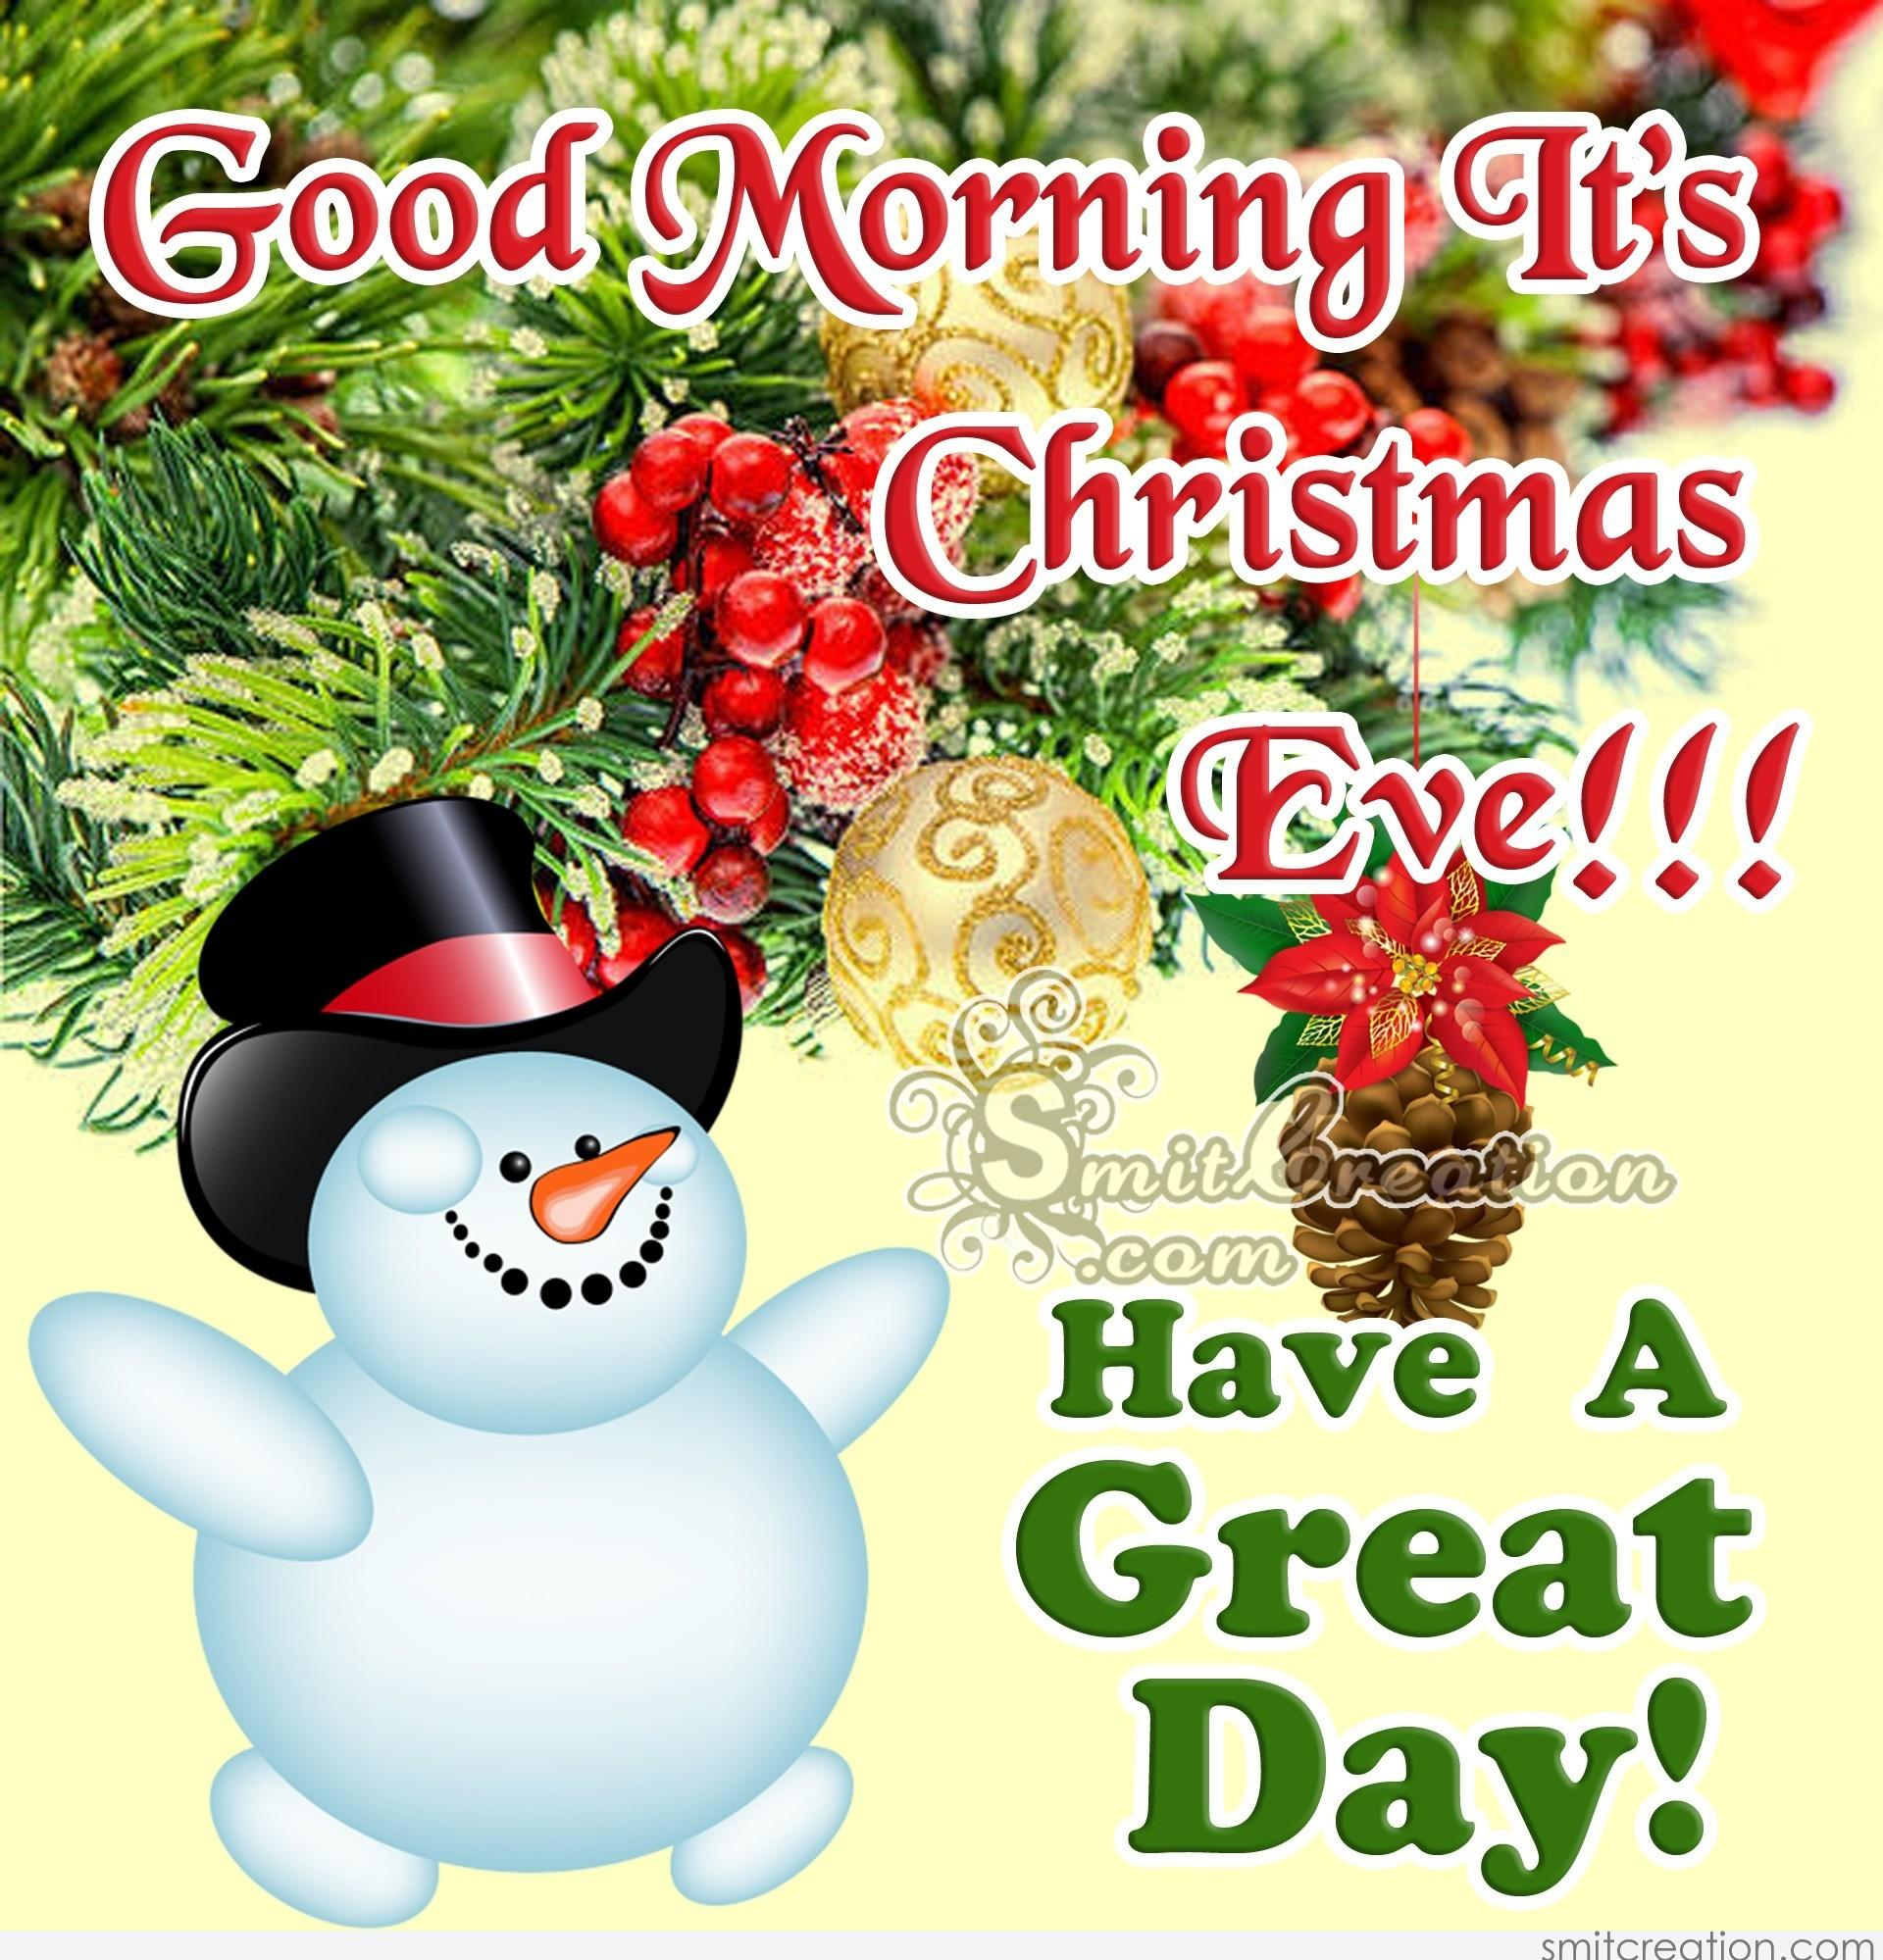 Good Morning It's Christmas Eve!!! Have A Great Day ...